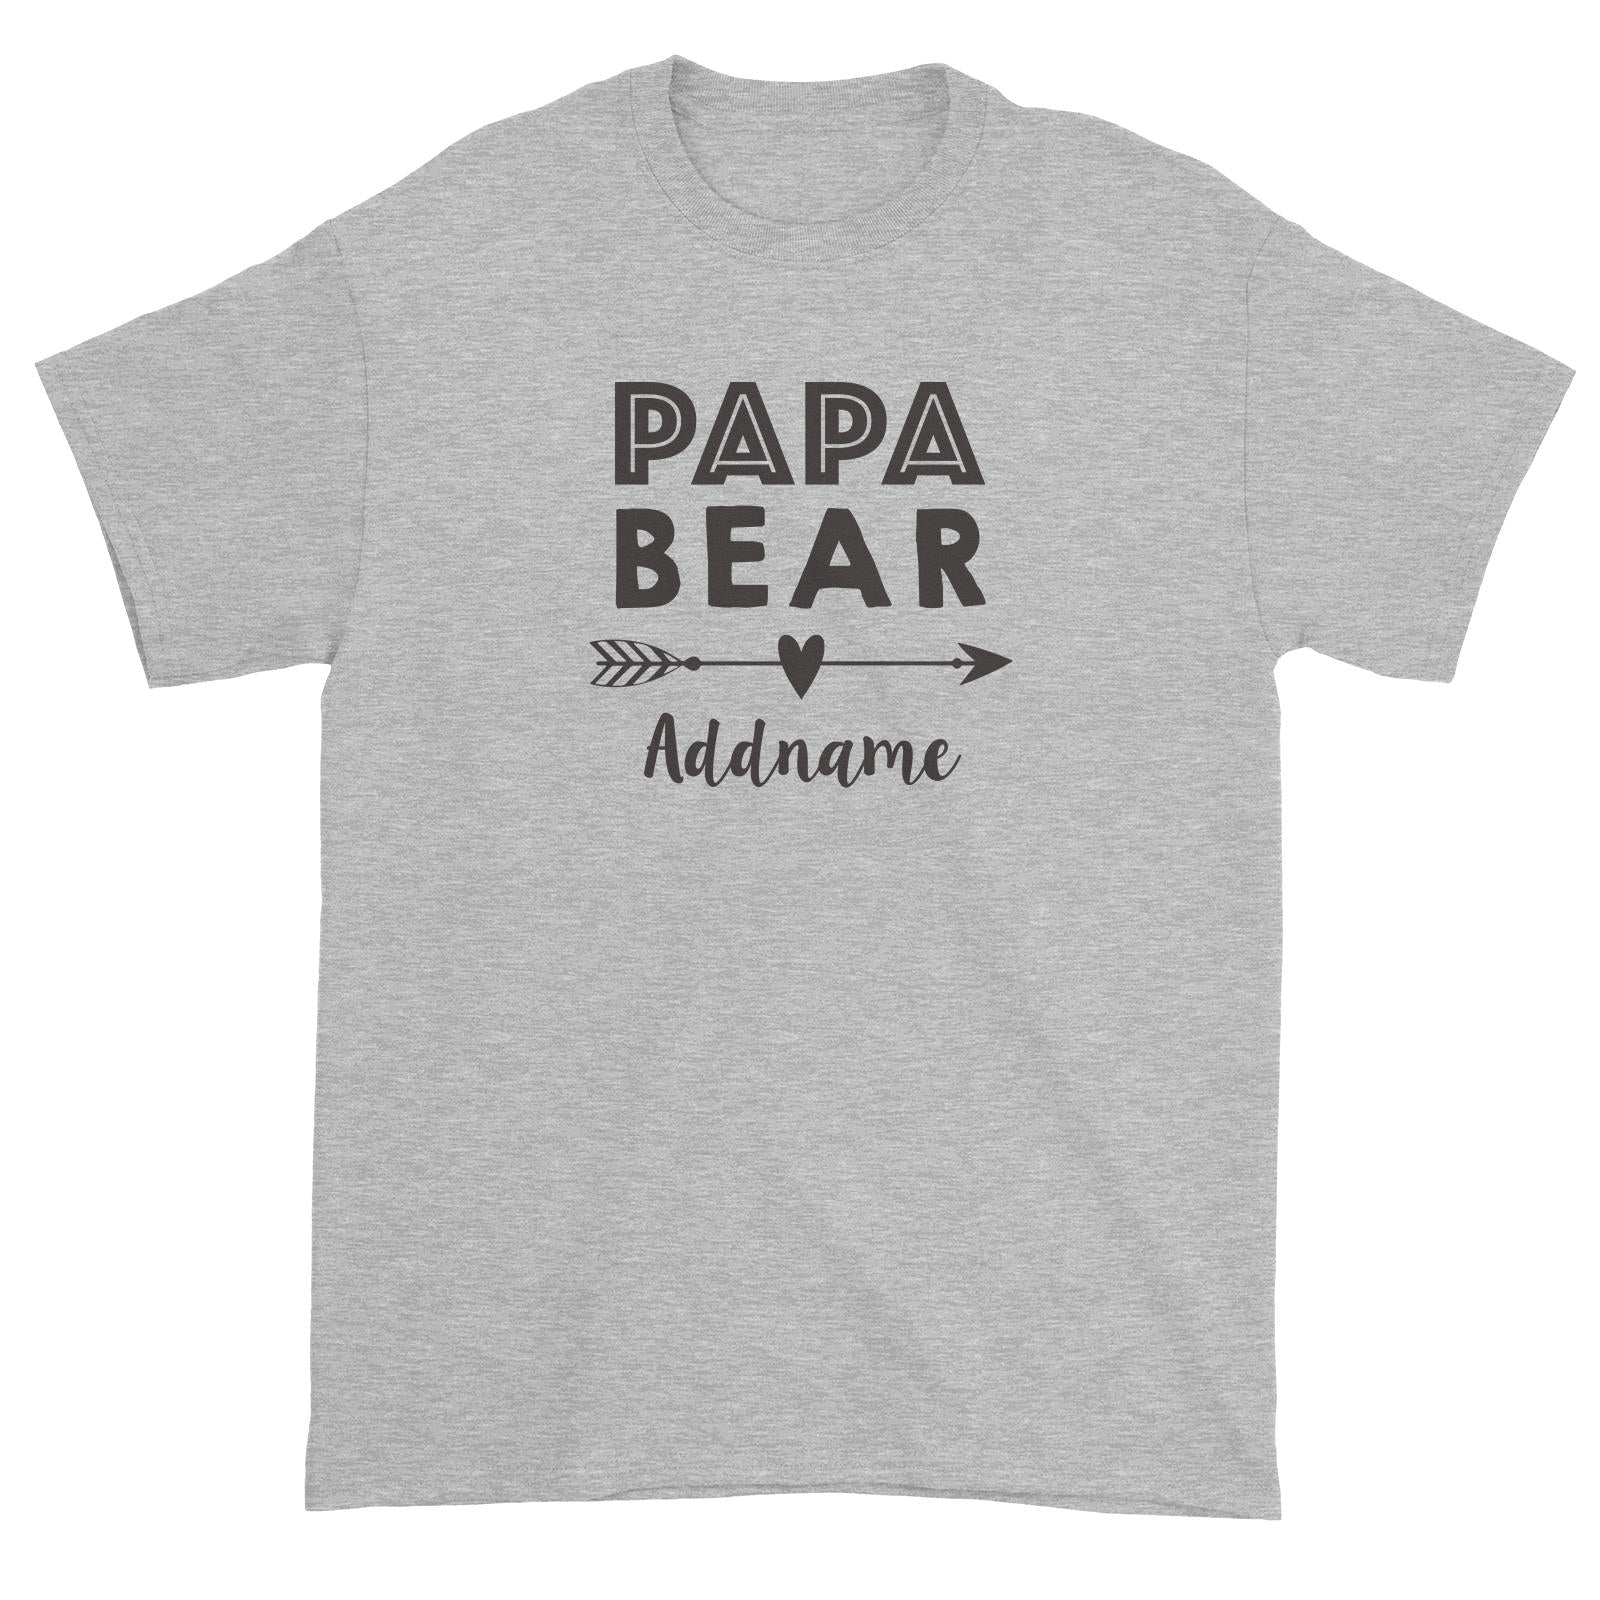 Papa Bear Addname Unisex T-Shirt  Matching Family Personalizable Designs